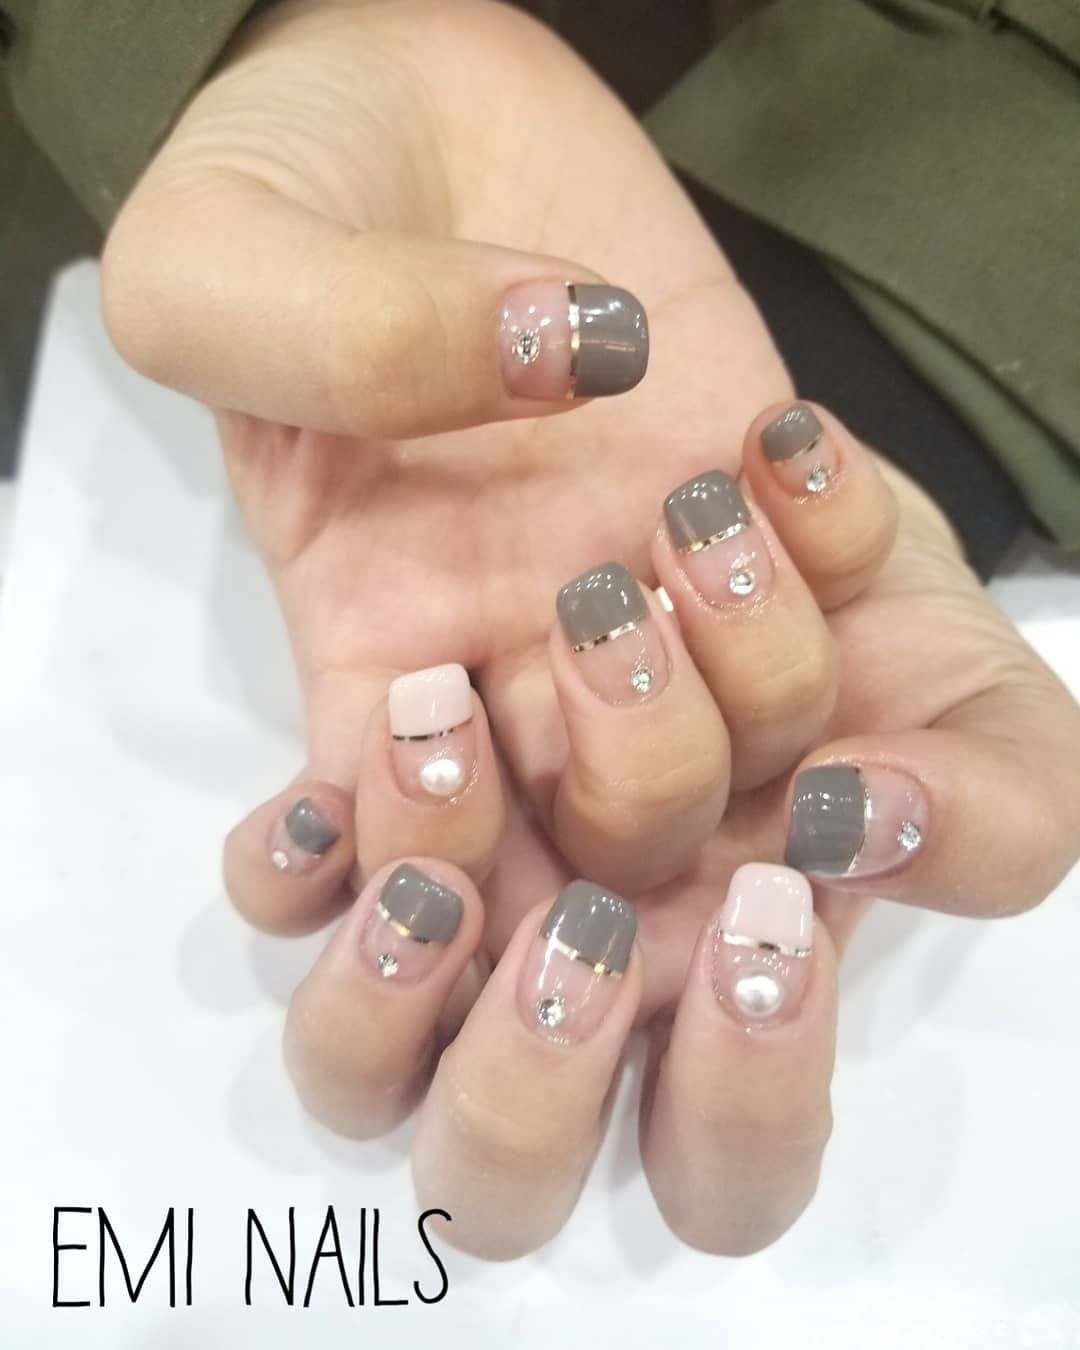 Emi Nails january Events !! Gel nail is $45 including design ...